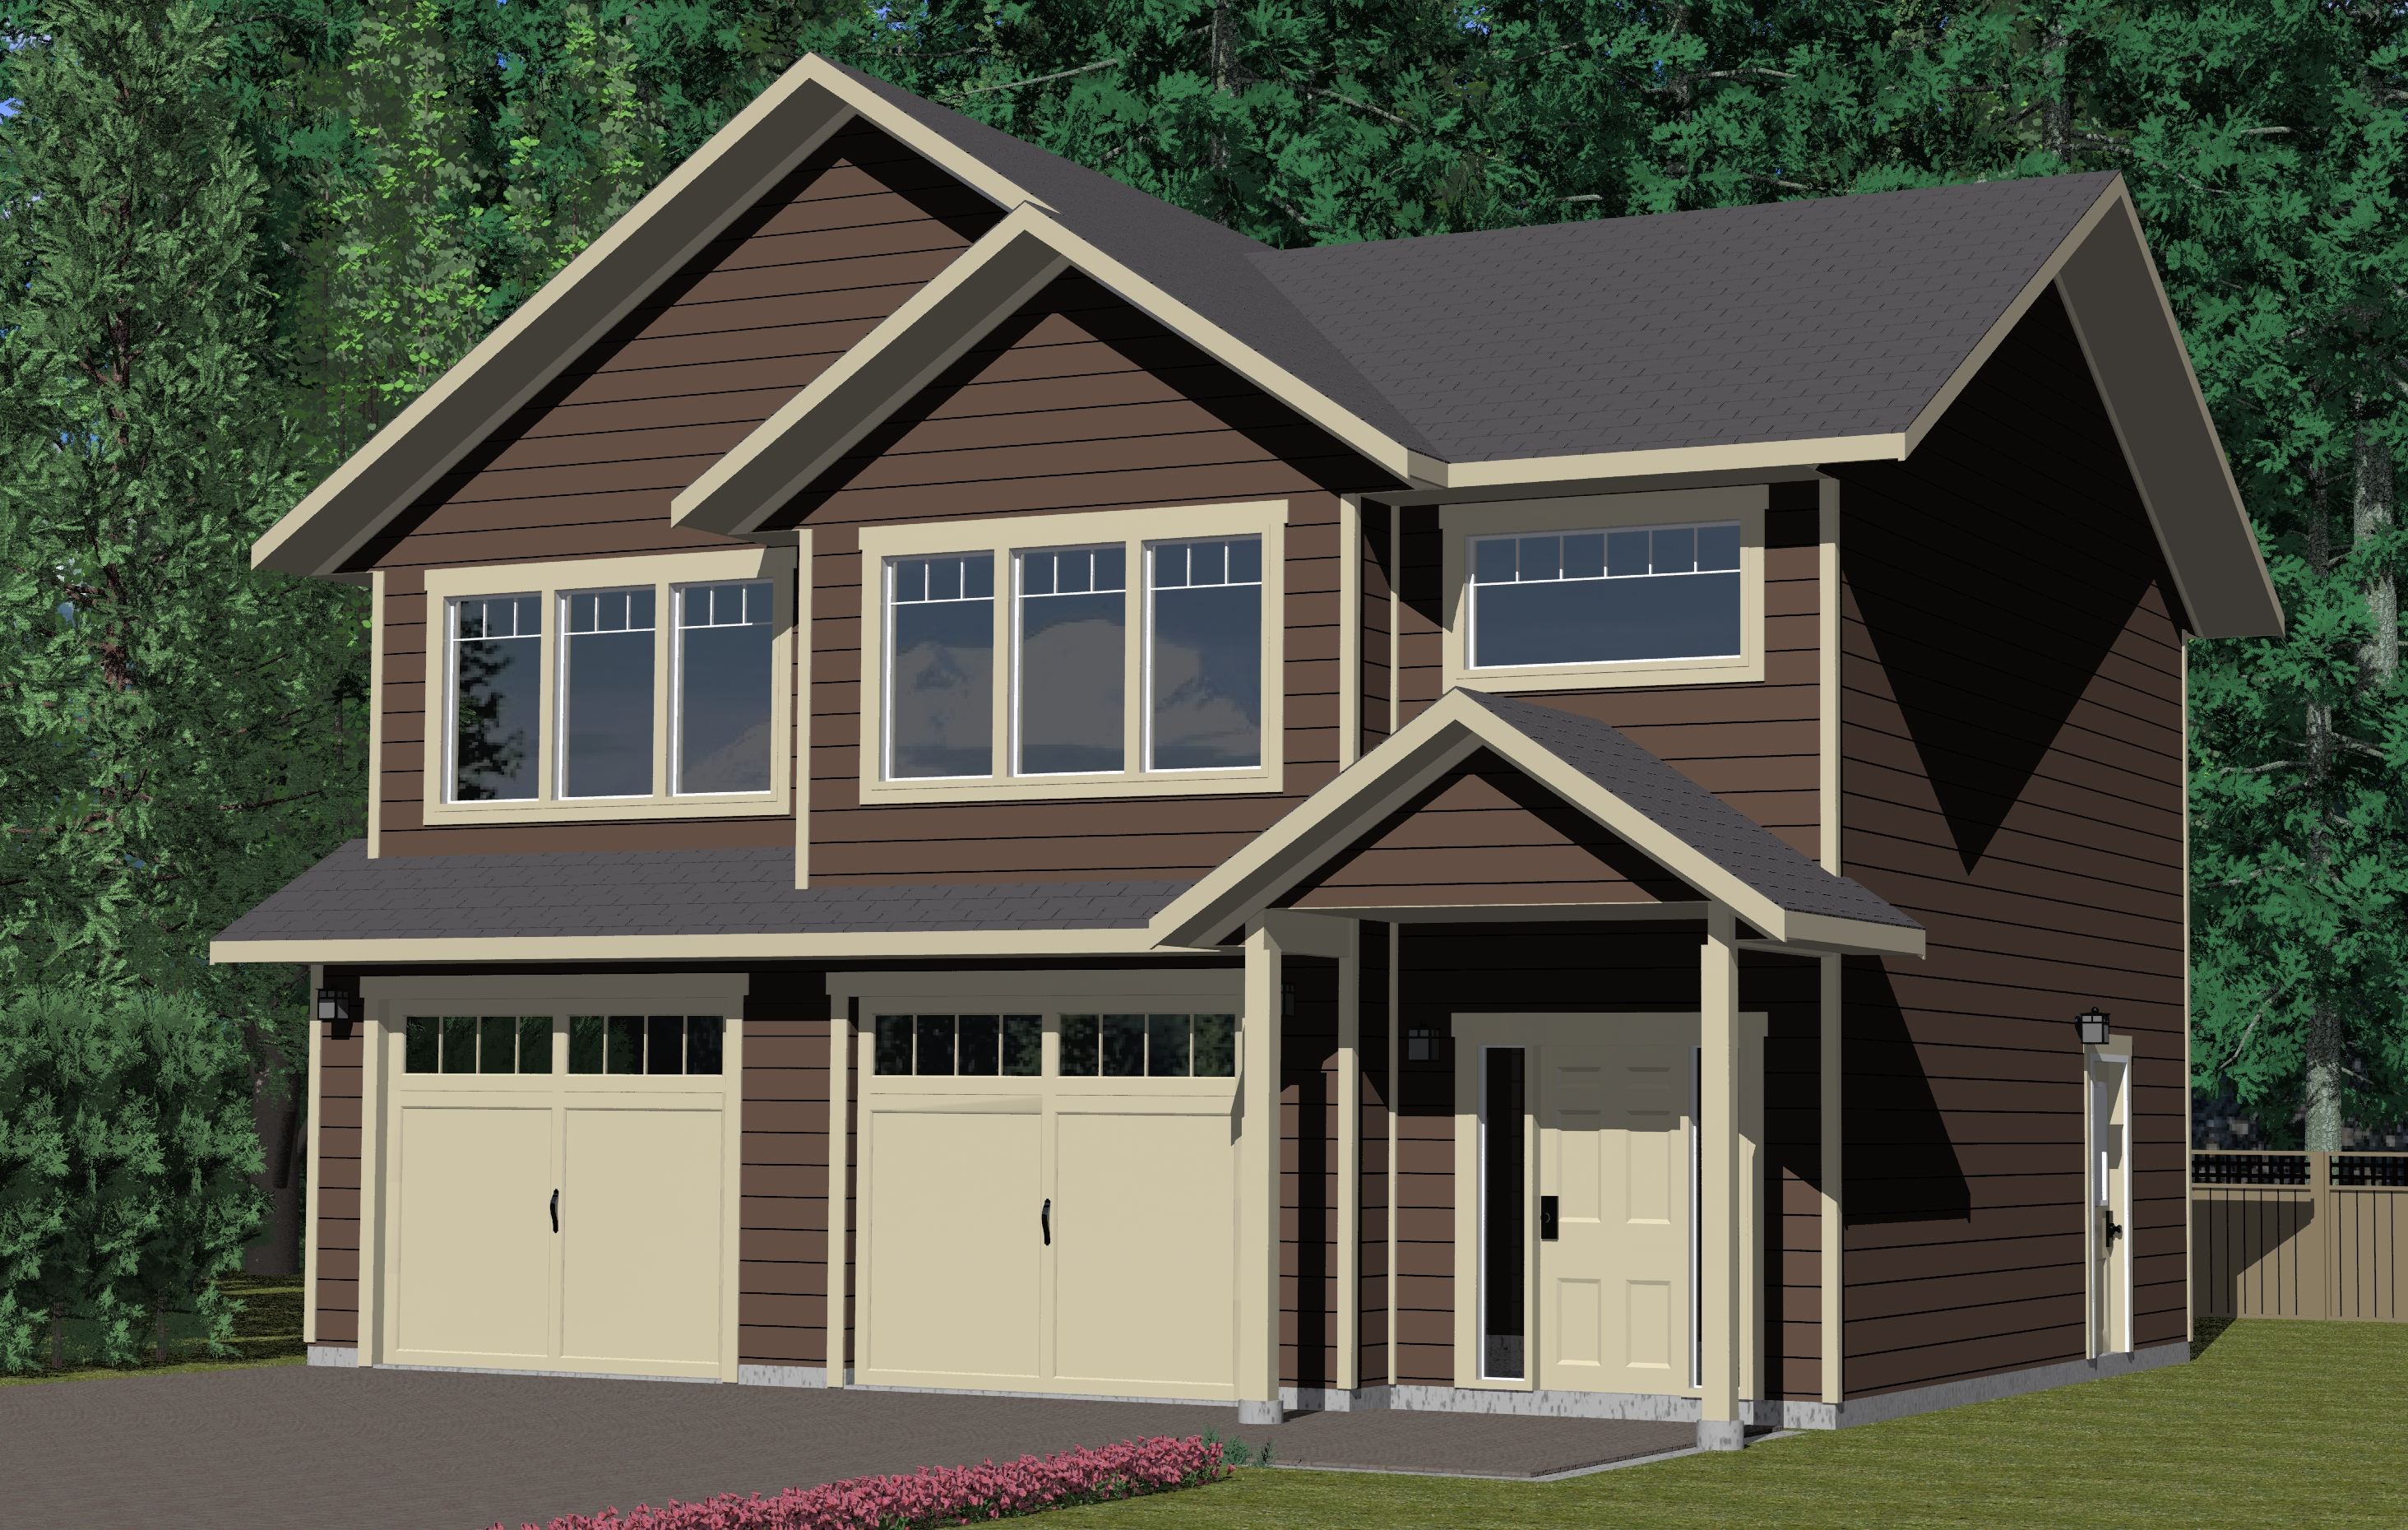 The tacheeda lake prefabricated home plans winton homes for Carriage house plans cost to build